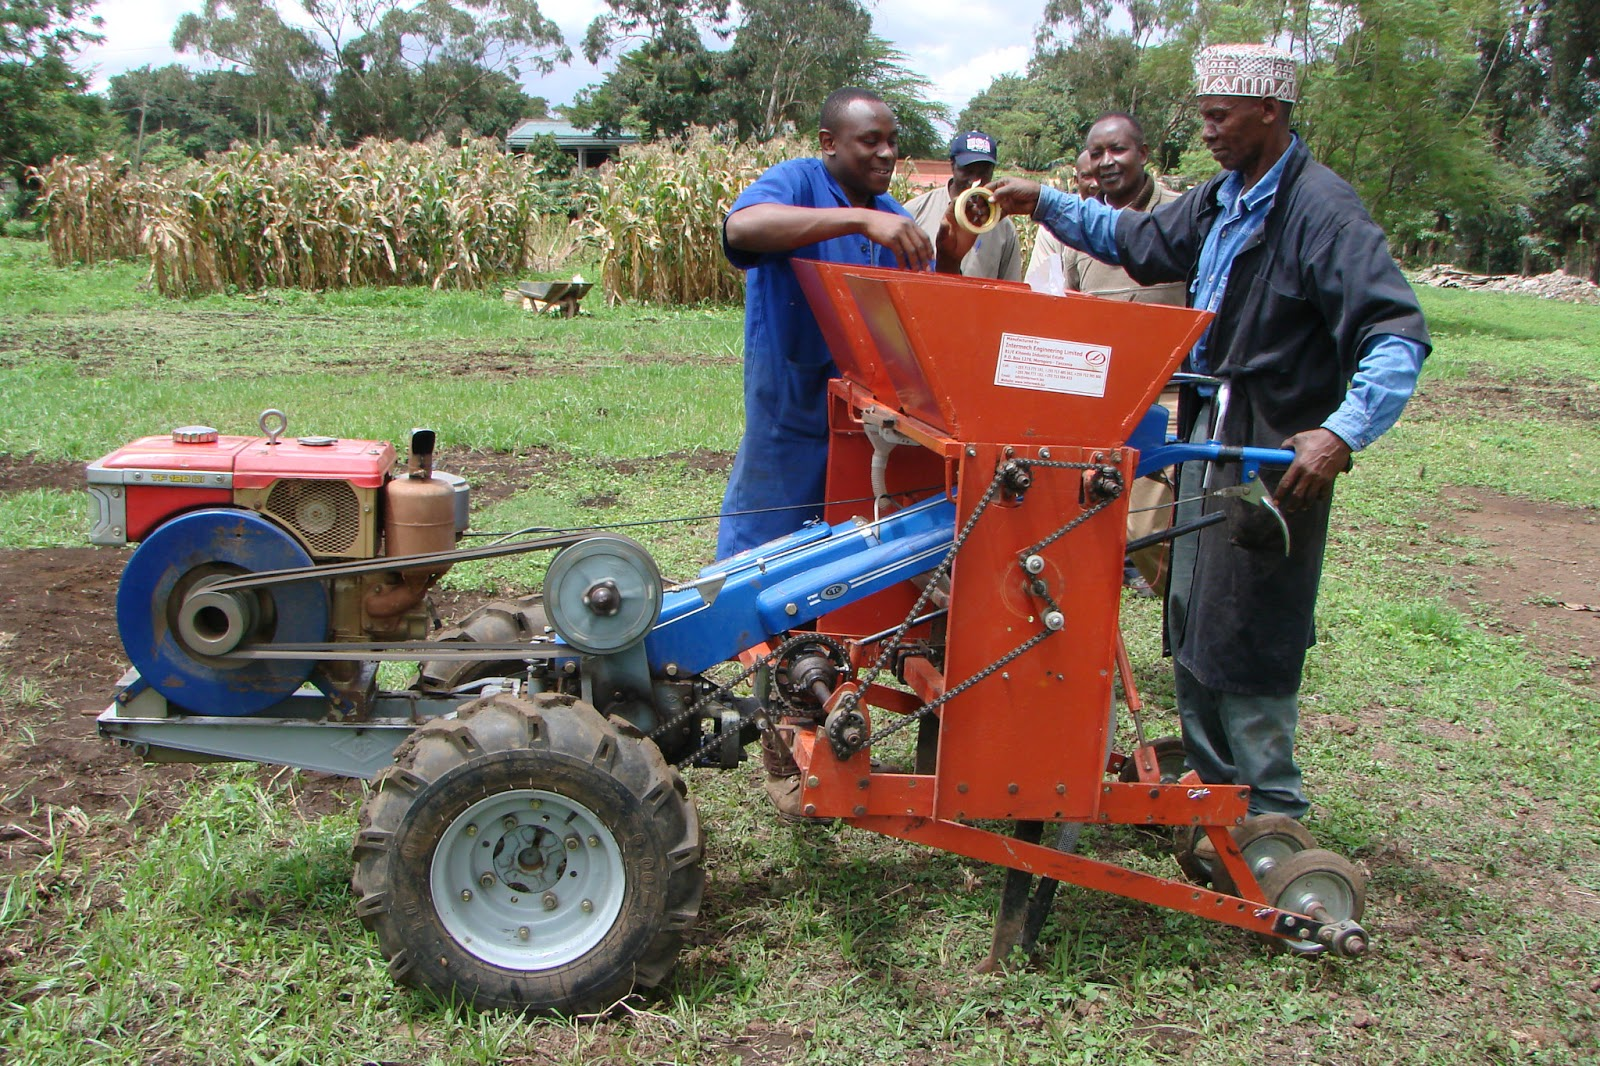 Farm Tractor 2 Wheel : Aciar giving power to african farmers